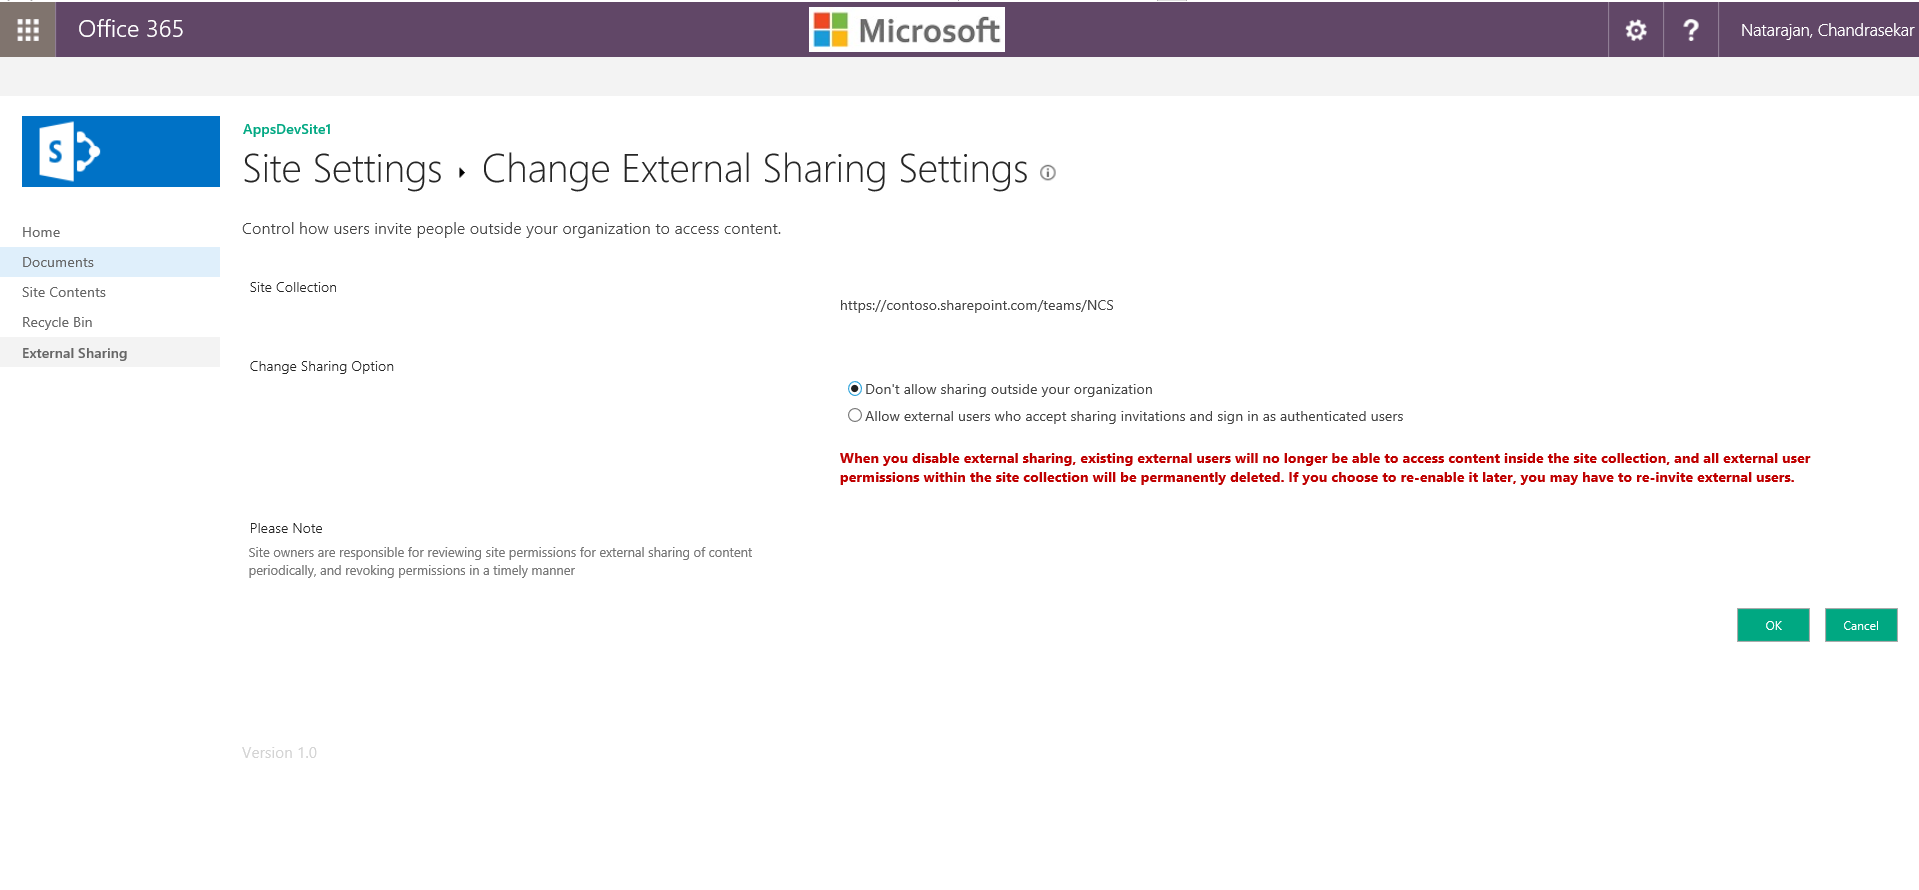 UI when external sharing is disabled from site settings